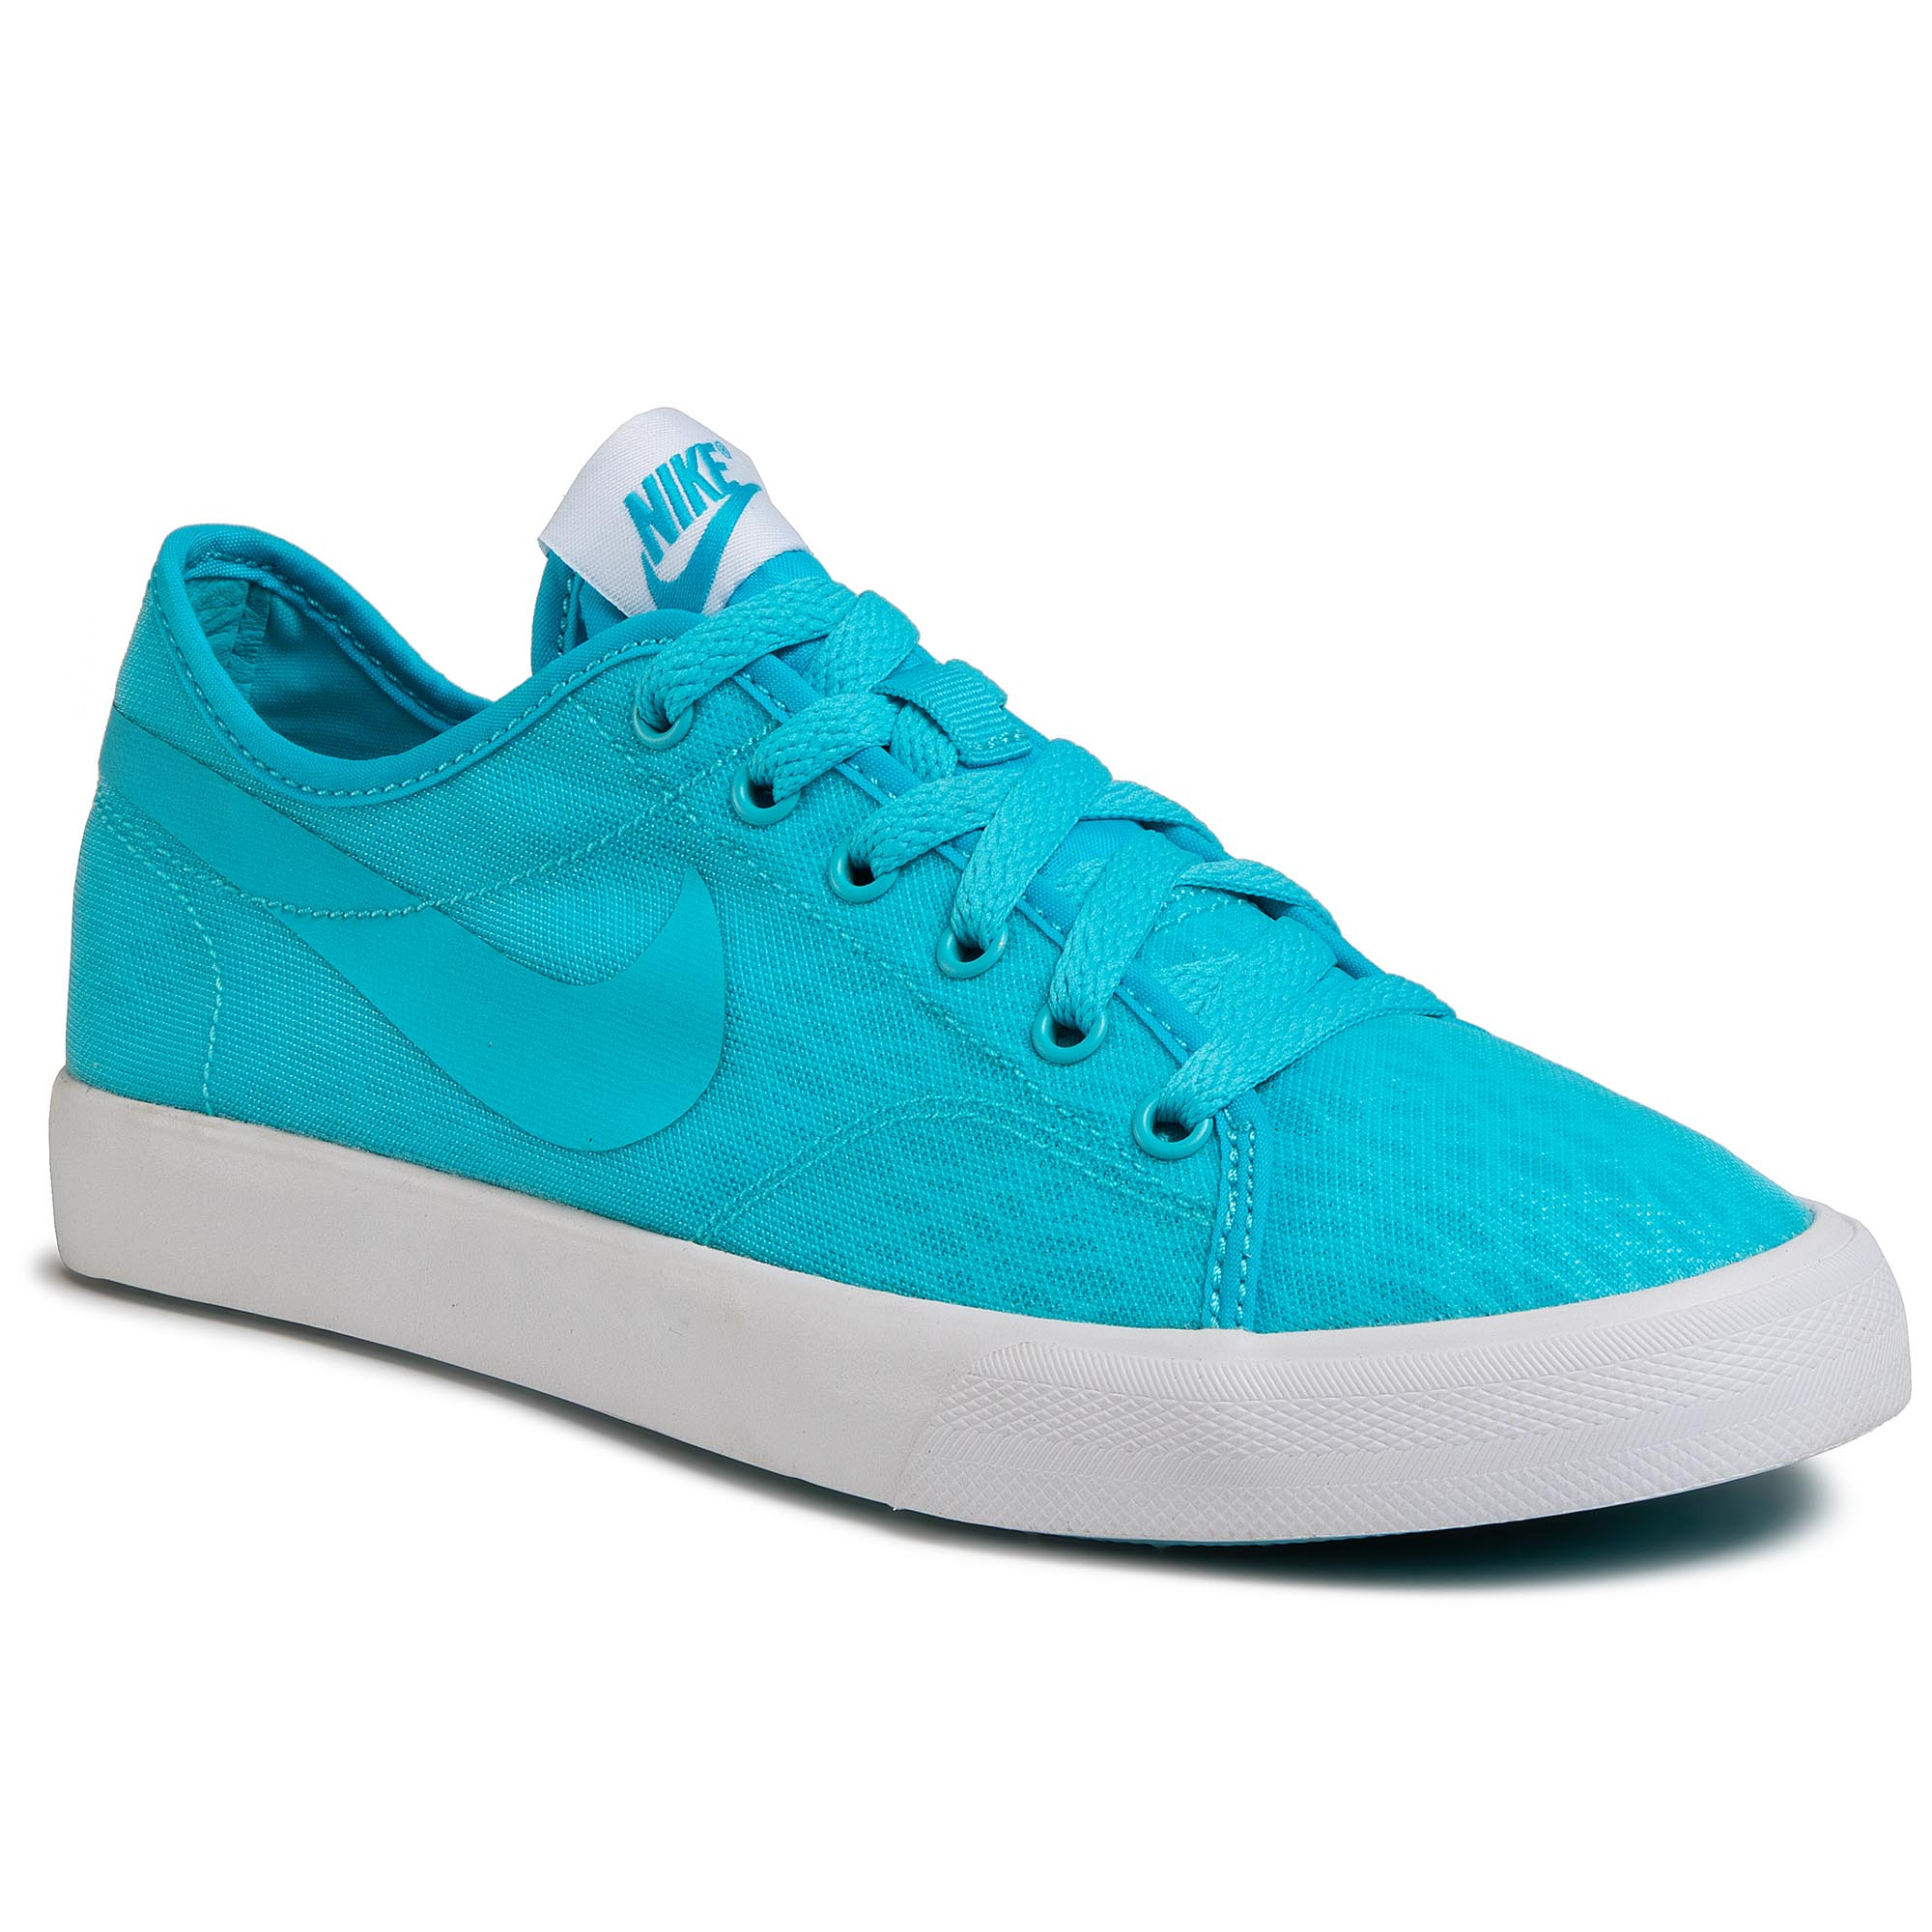 Topánky NIKE - Wmns Primo Court Br 833678 441 Gamma Blue/Gamma Blue/White